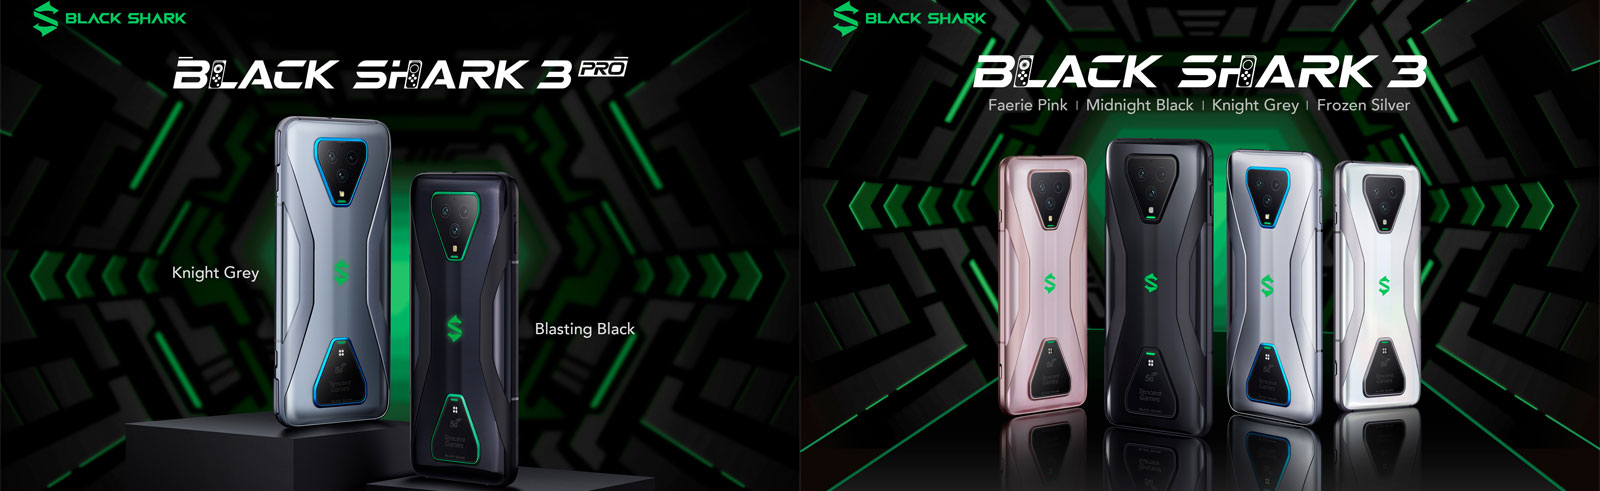 Black Shark 3 and Black Shark 3 Pro specifications and prices